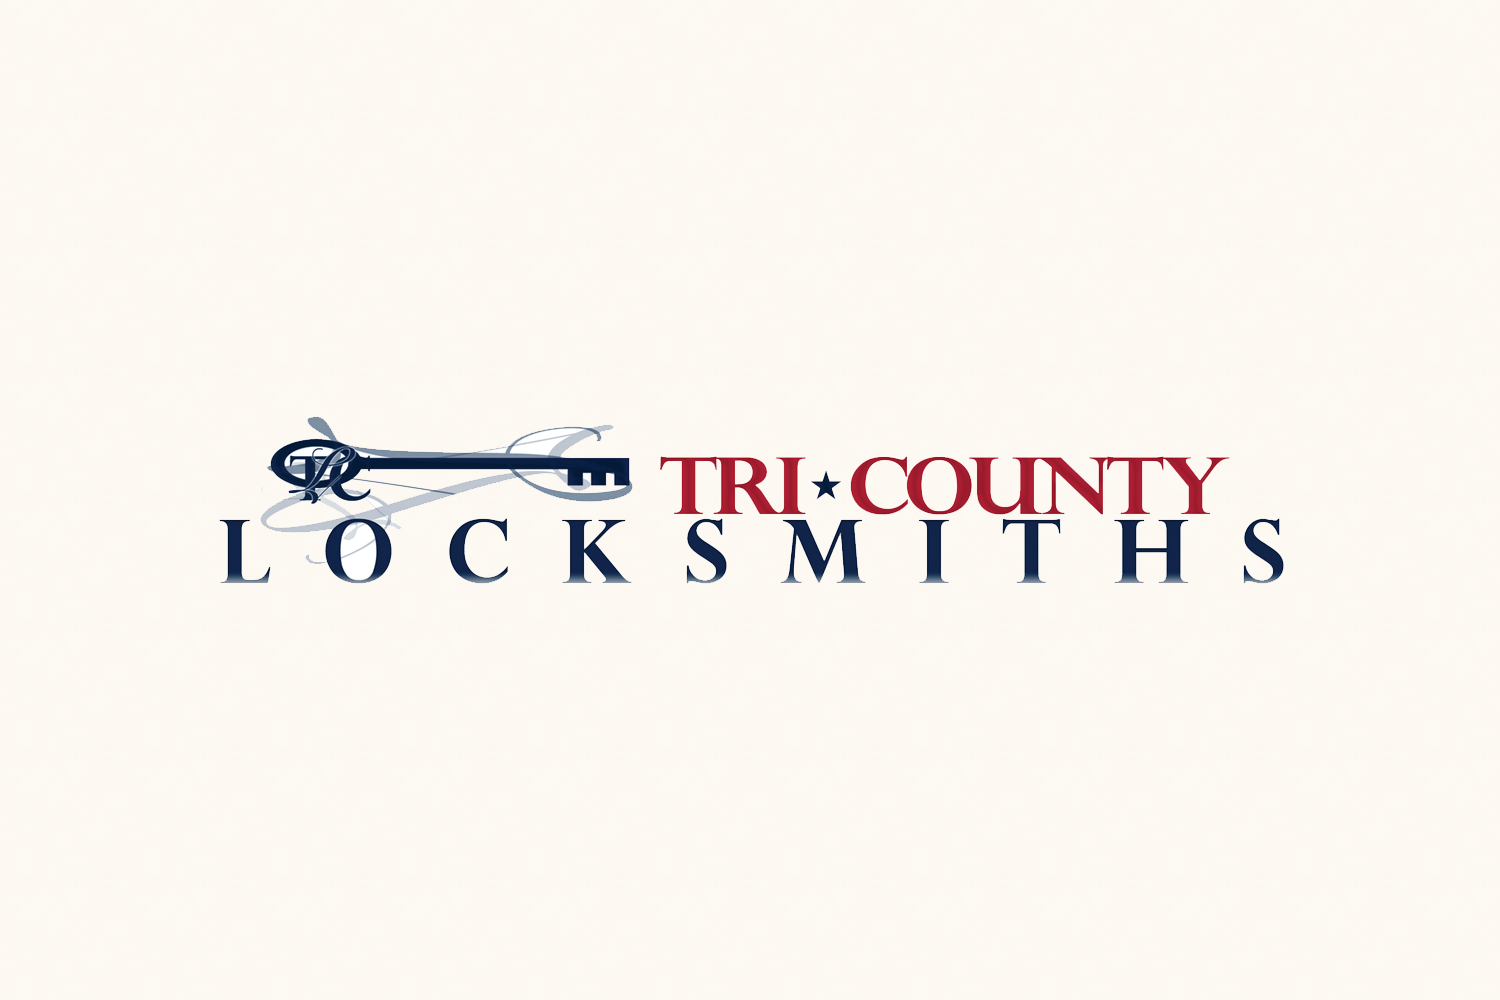 Tri County Locksmiths